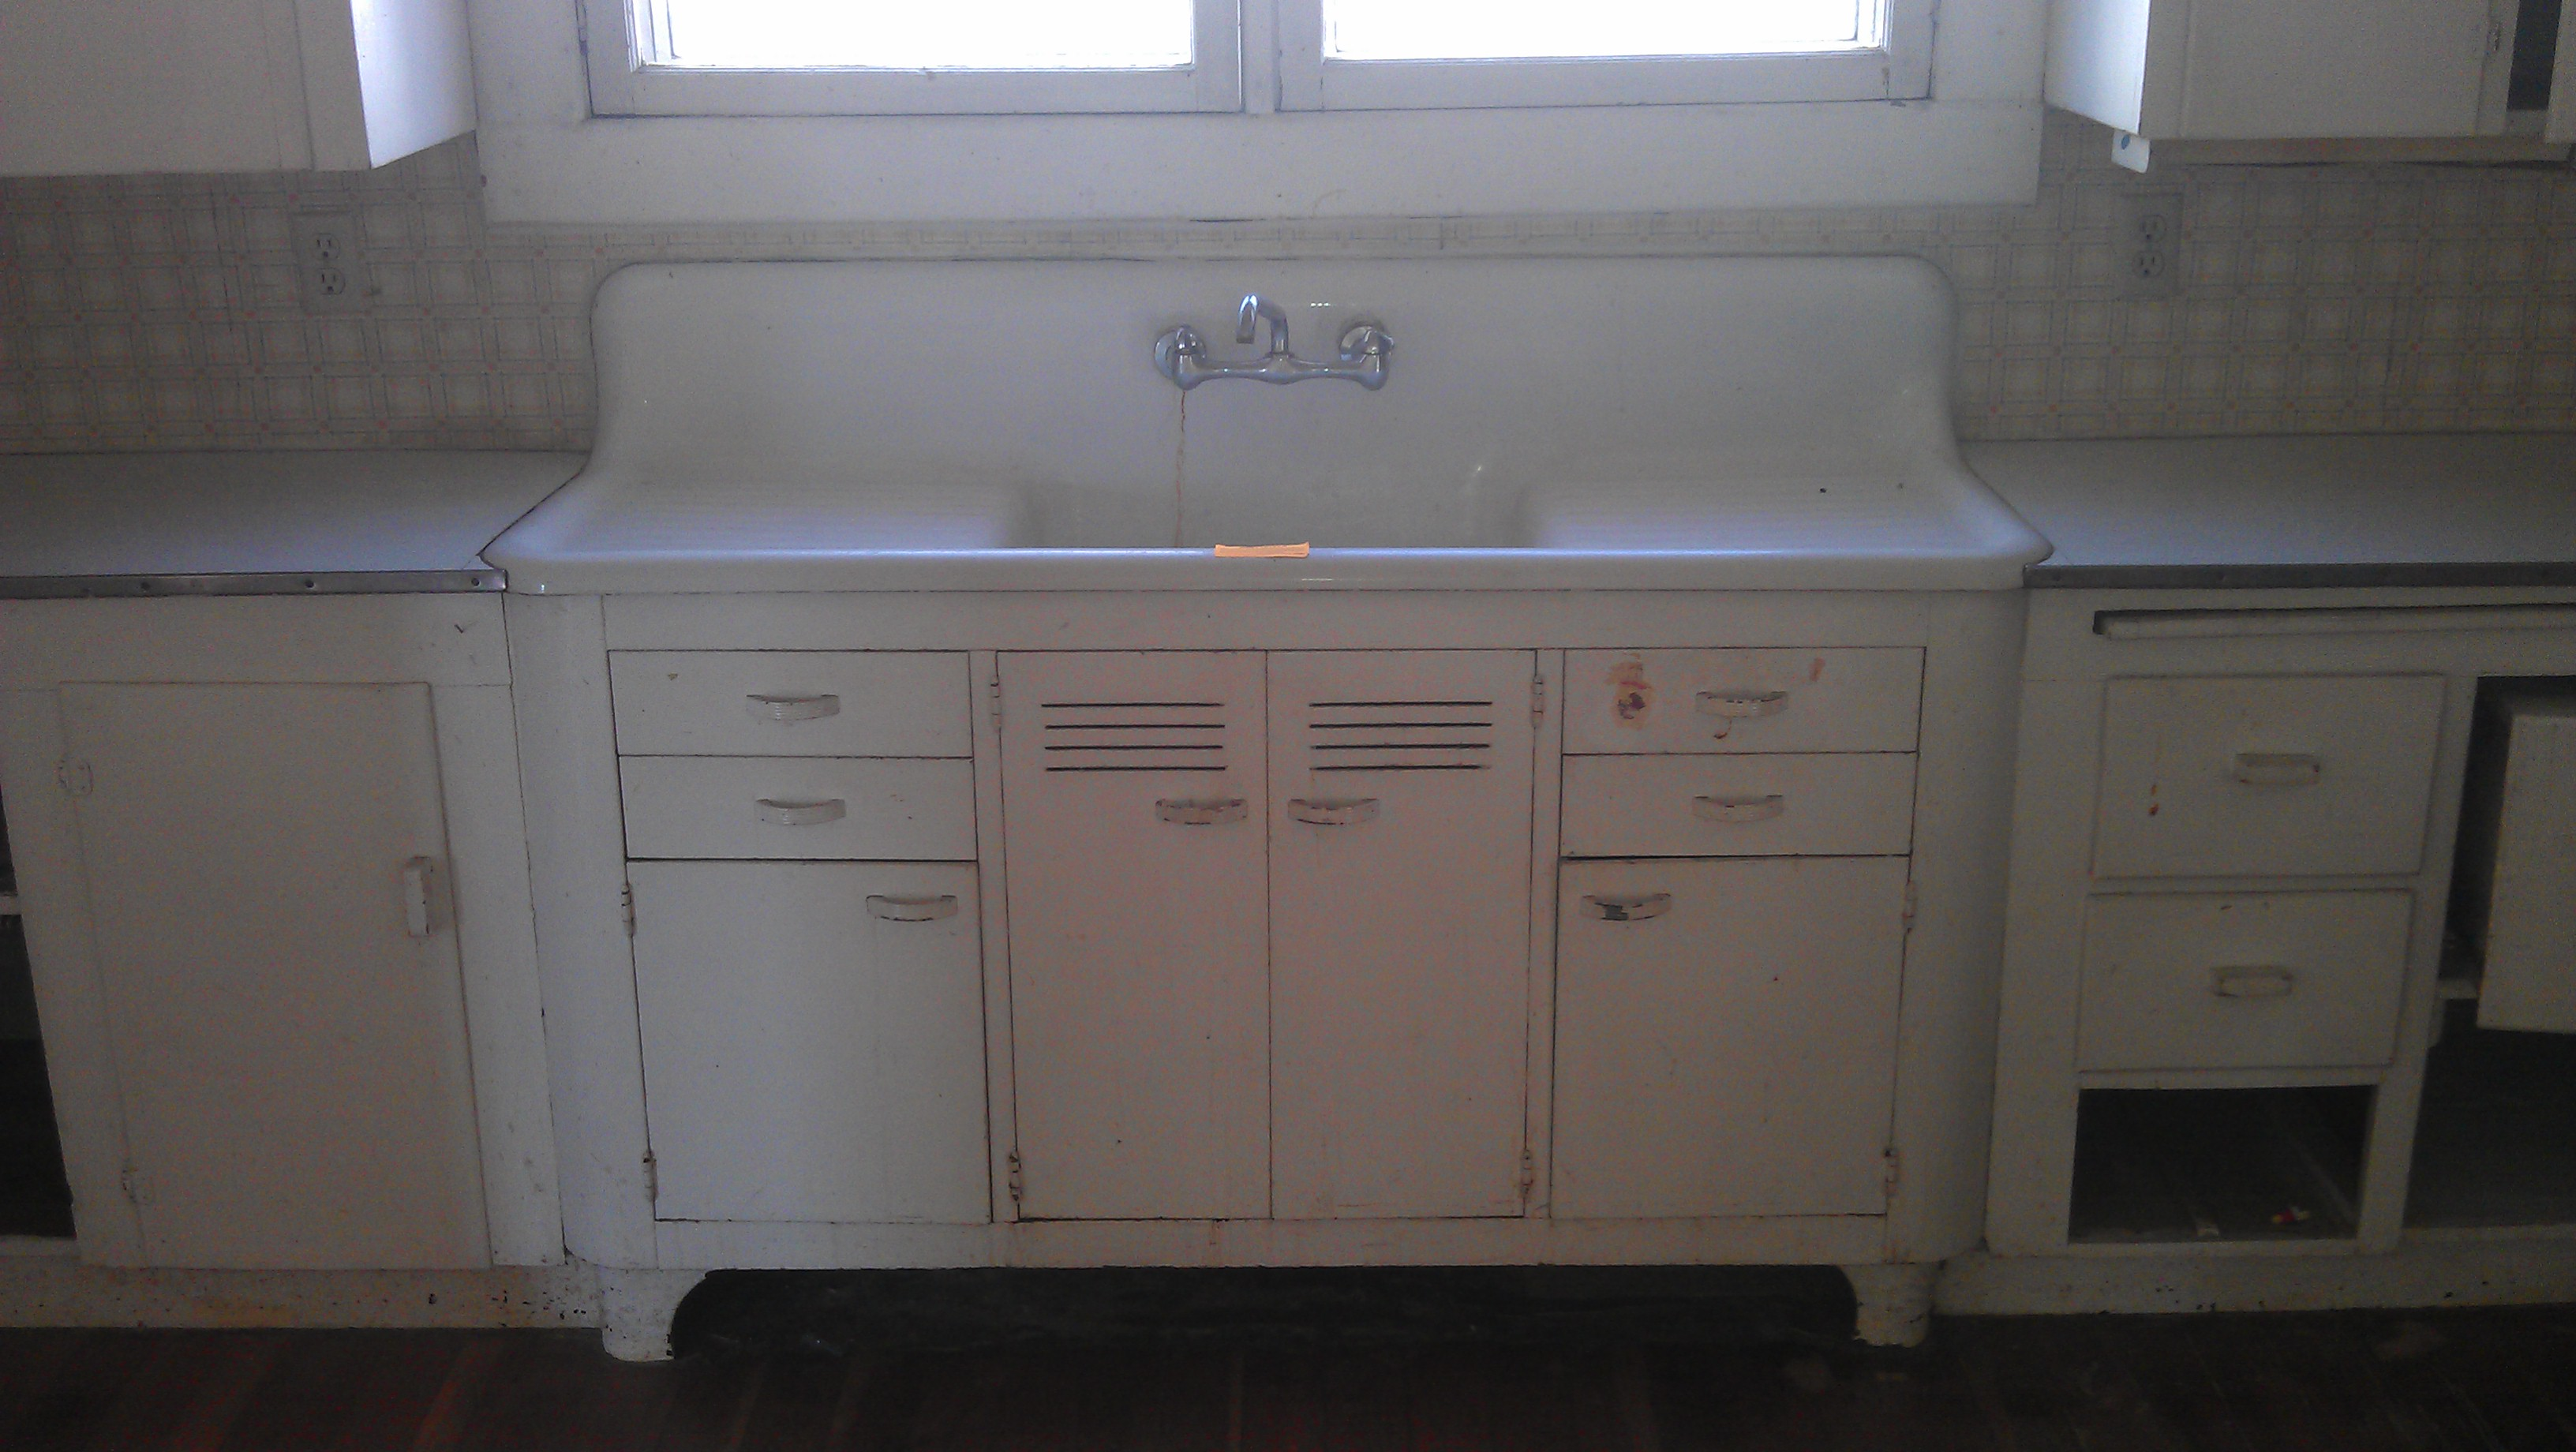 Vintage Single Basin Double Drainboard Kitchen Sink Woot